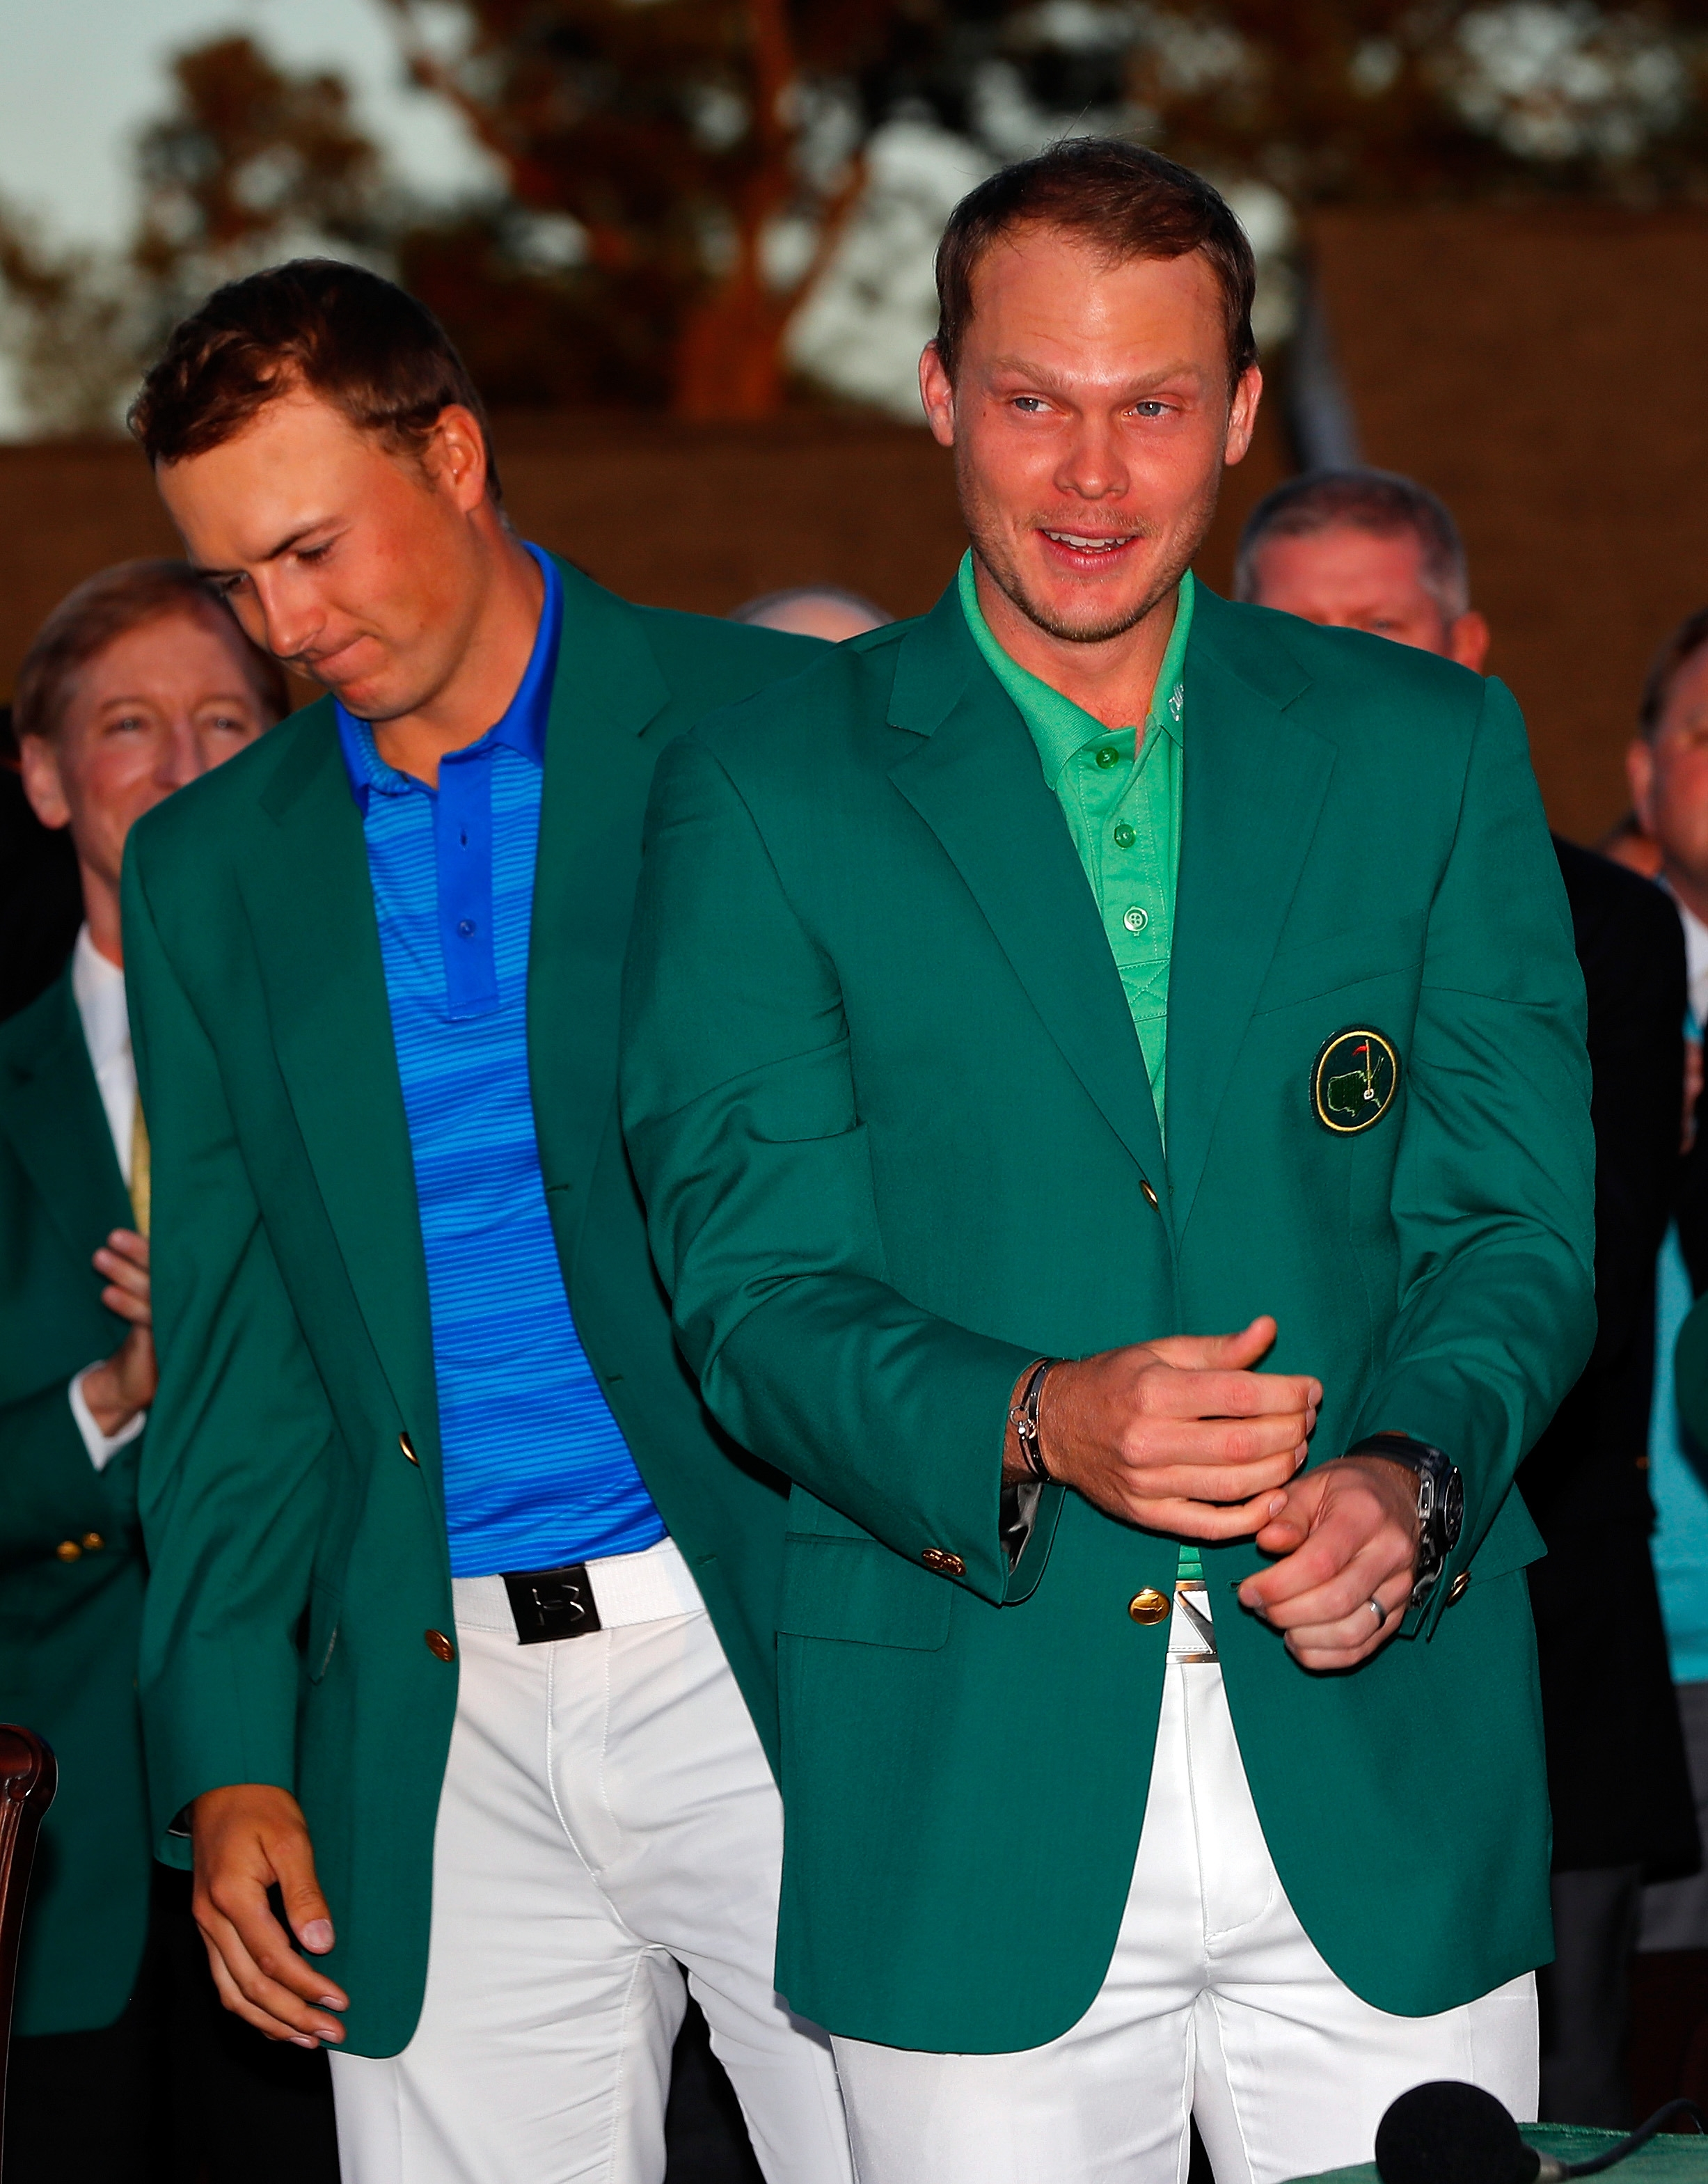 Jordan Spieth presents Danny Willett of England with the green jacket at the Masters.